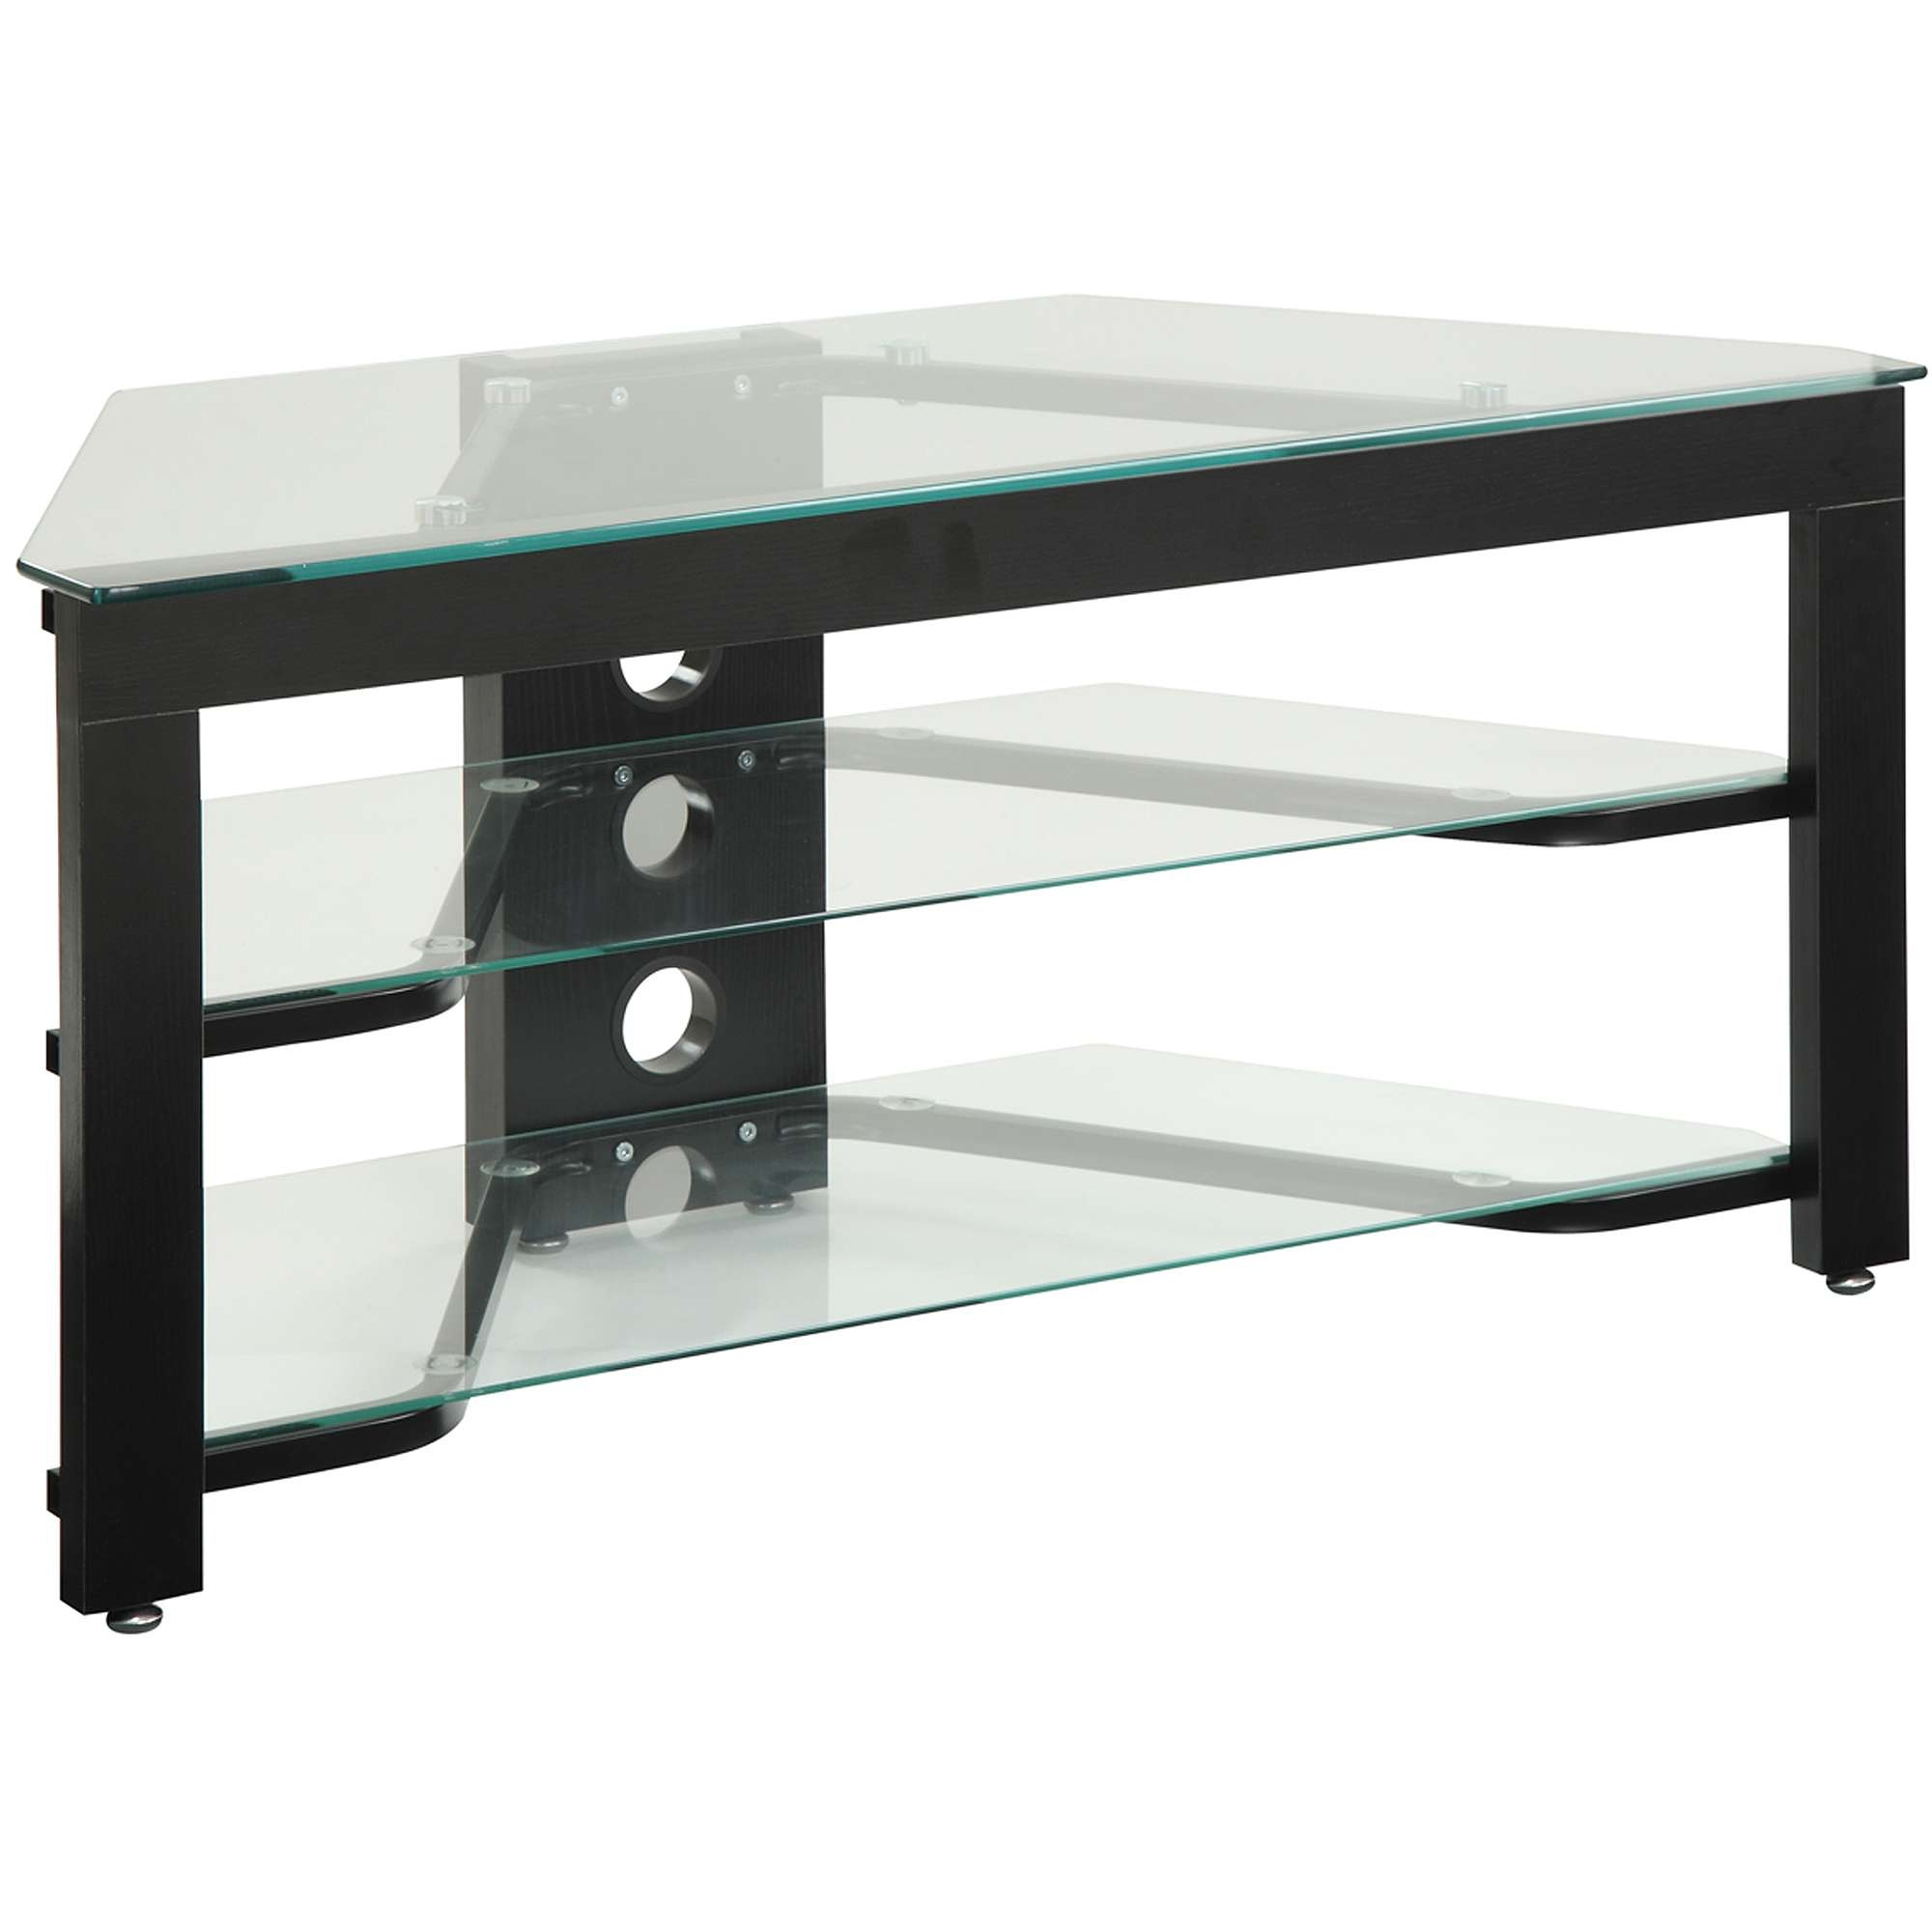 Convenience Concepts Designs2go Wood And Glass Tv Stand For Tvs Up For Metal And Wood Tv Stands (View 3 of 15)